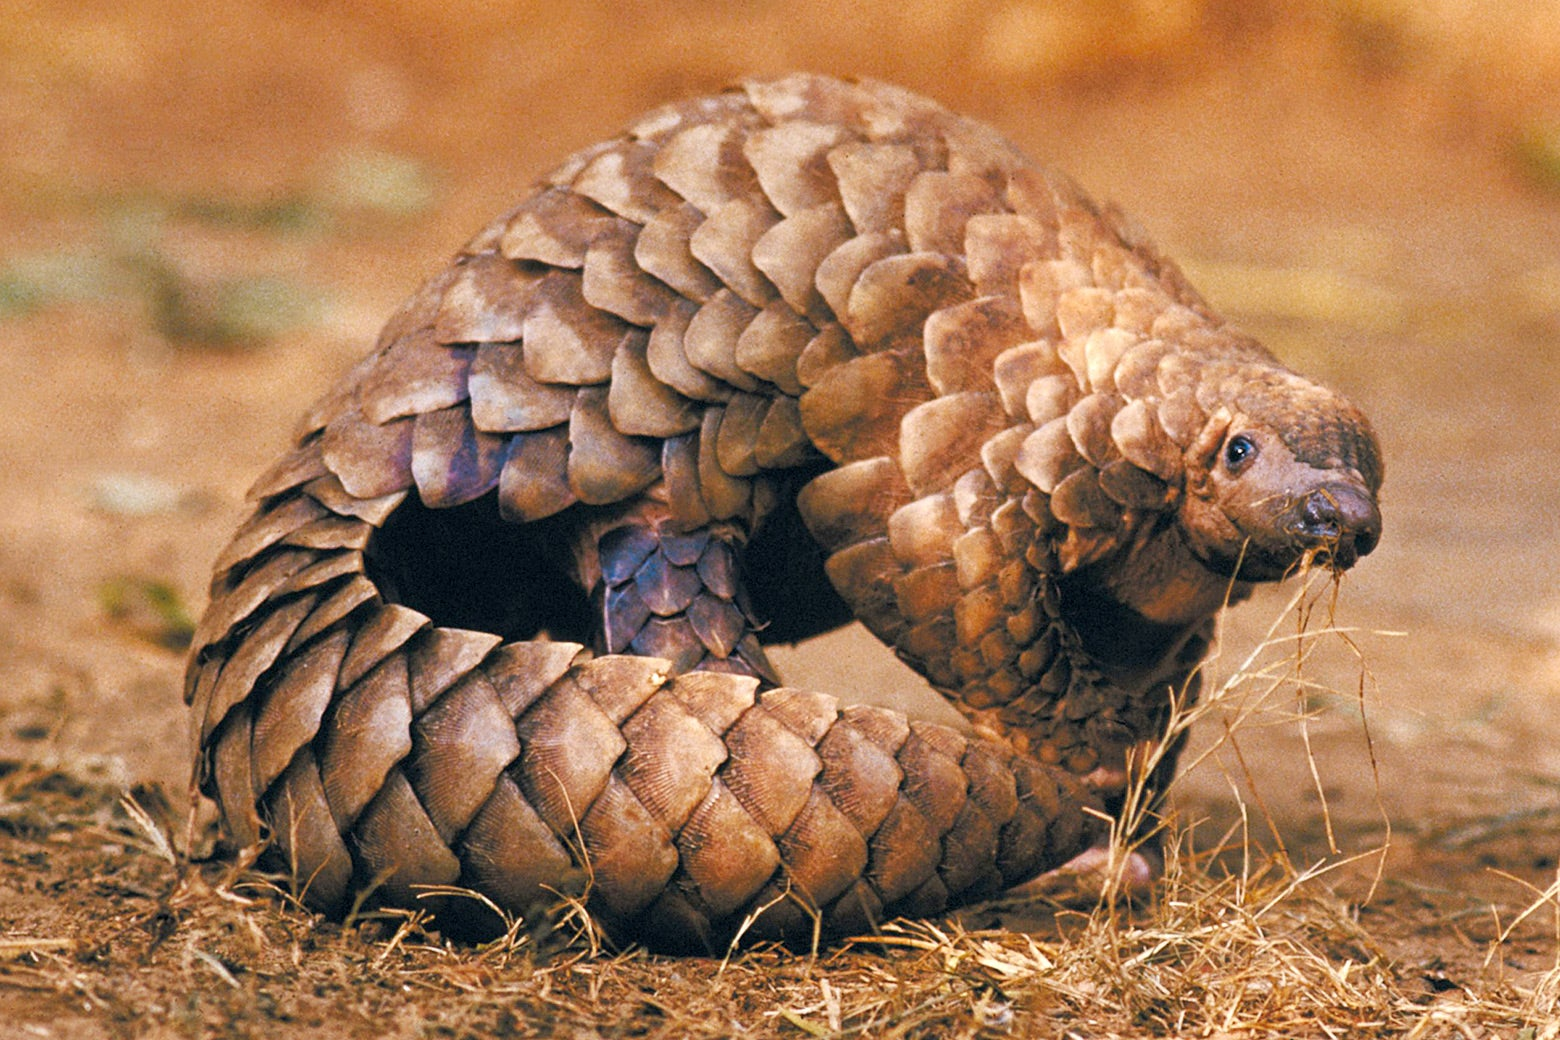 A pangolin in the wild.